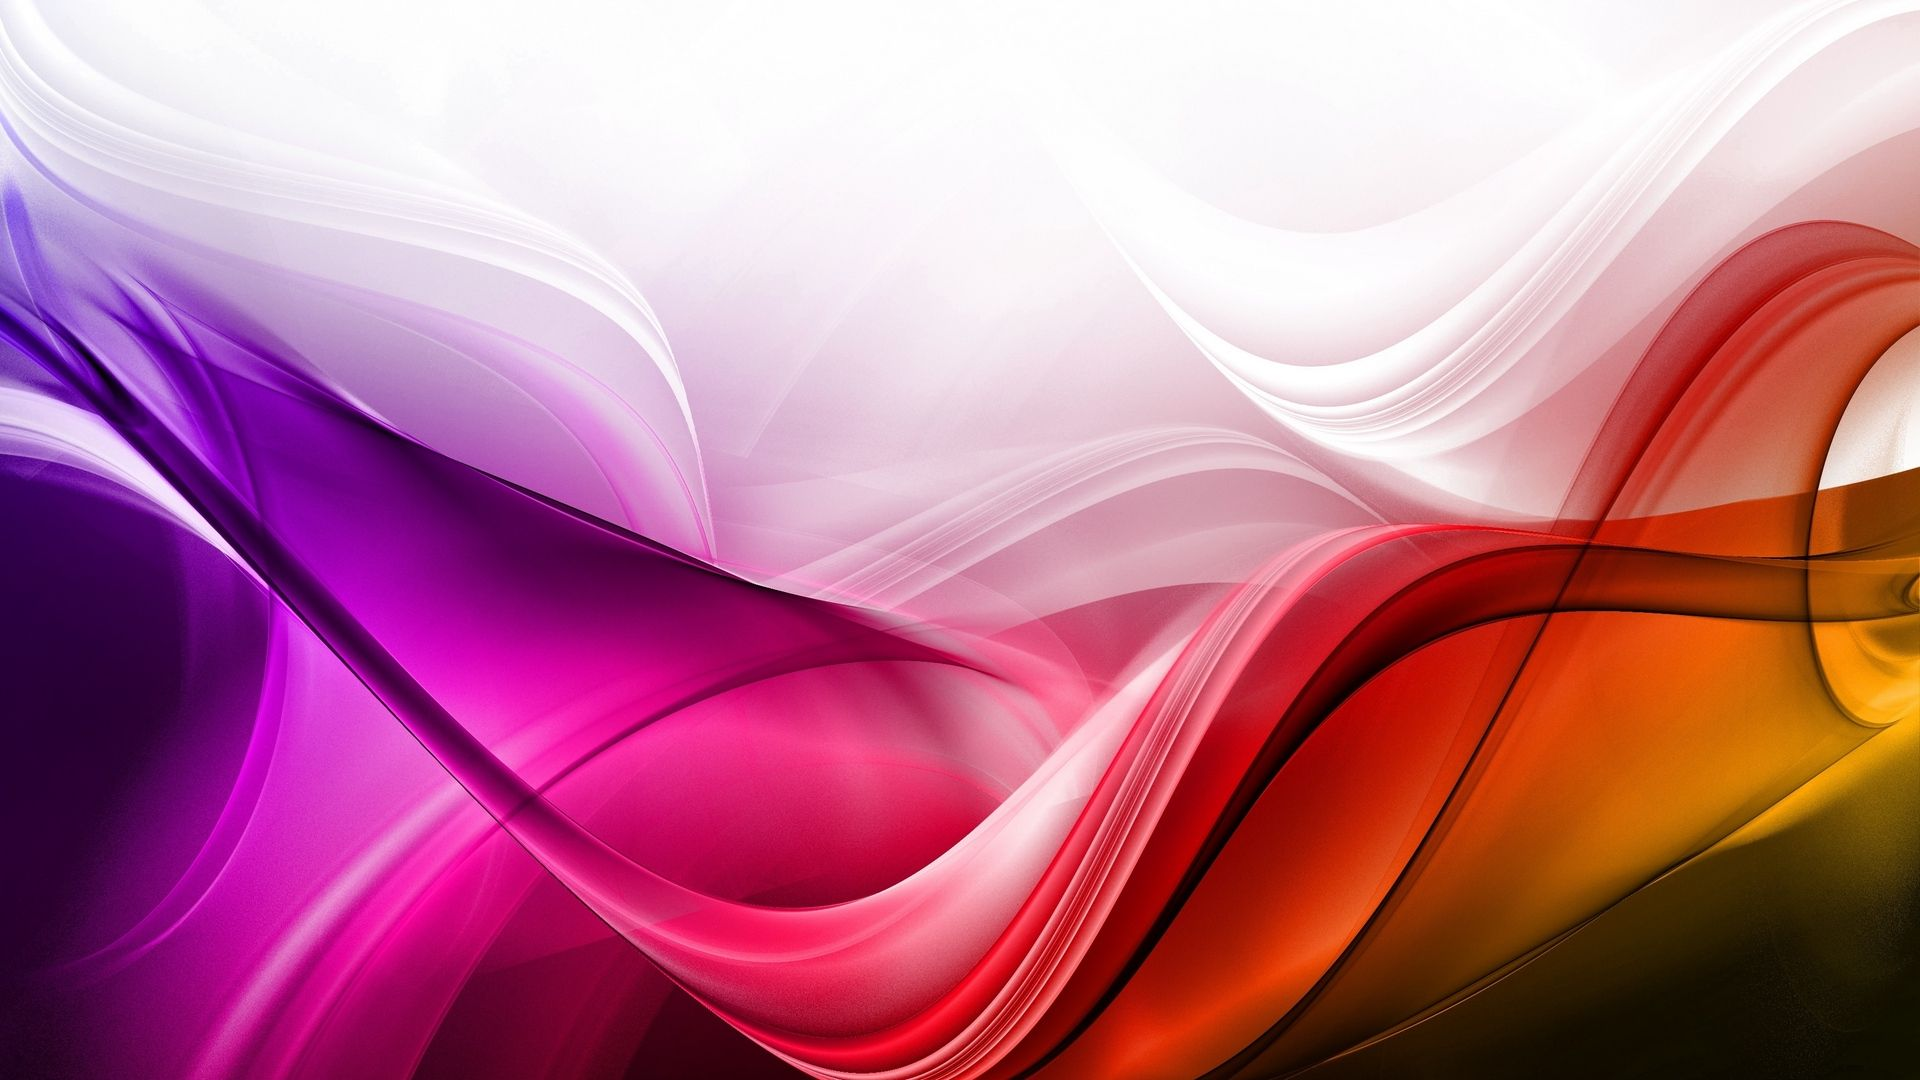 Lines Background Abstraction 4k With Flowing